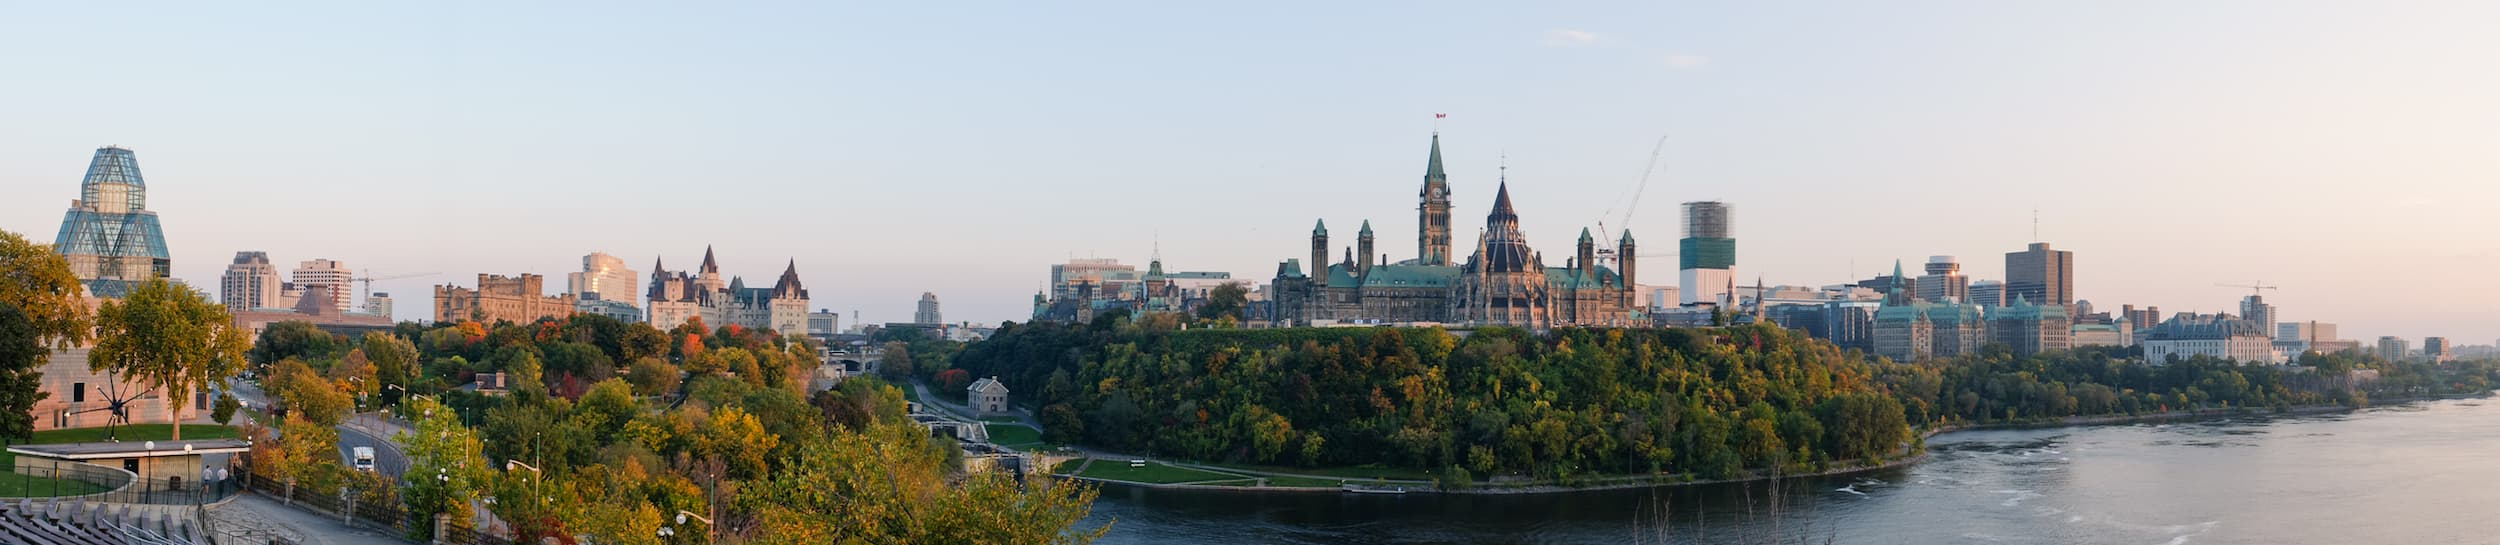 Pictured: skyline of Ottawa